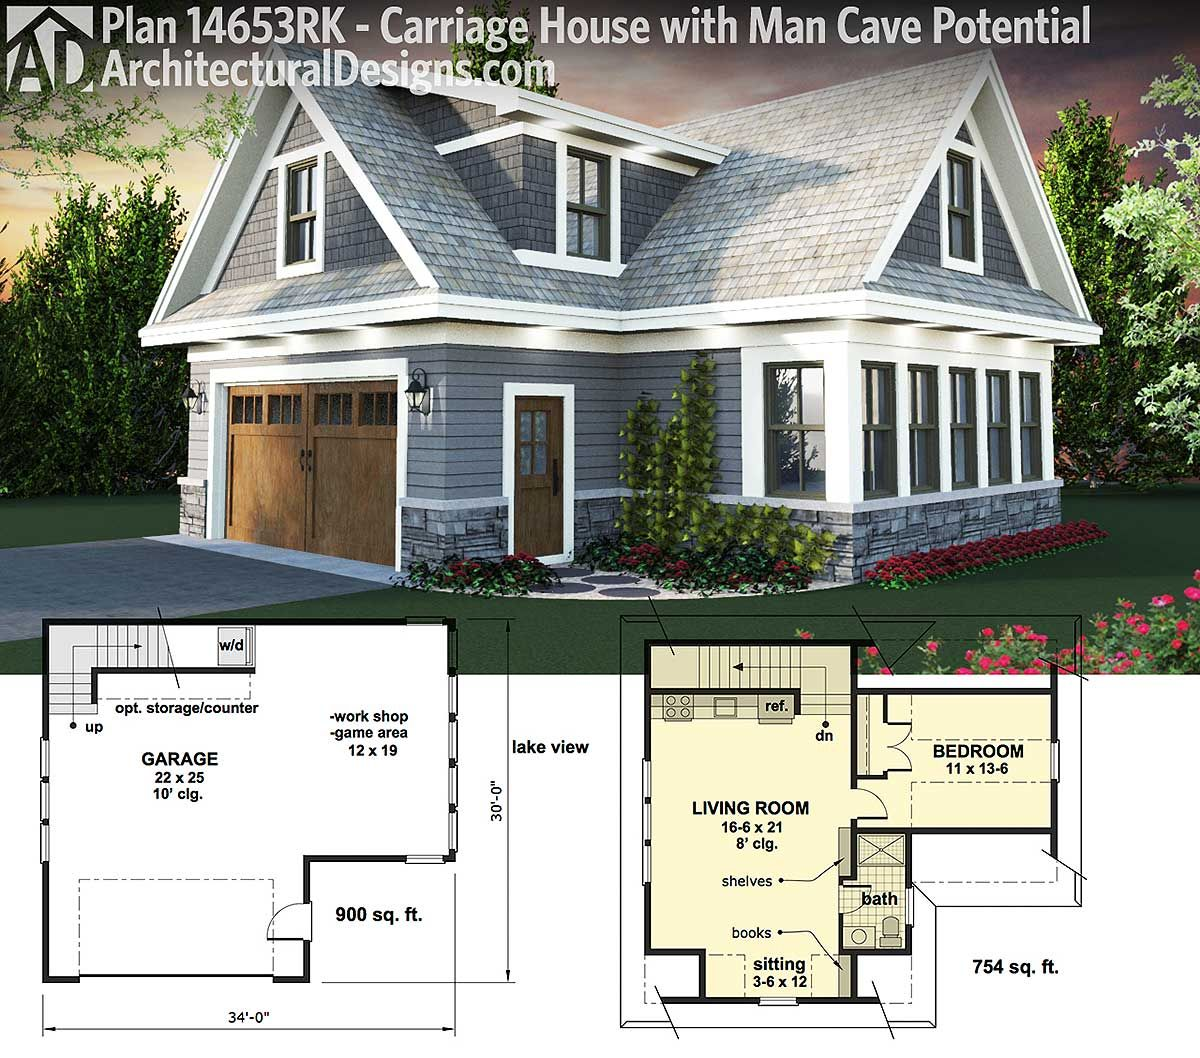 Small Backyard Guest House Plans: Plan 14653RK: Carriage House Plan With Man Cave Potential